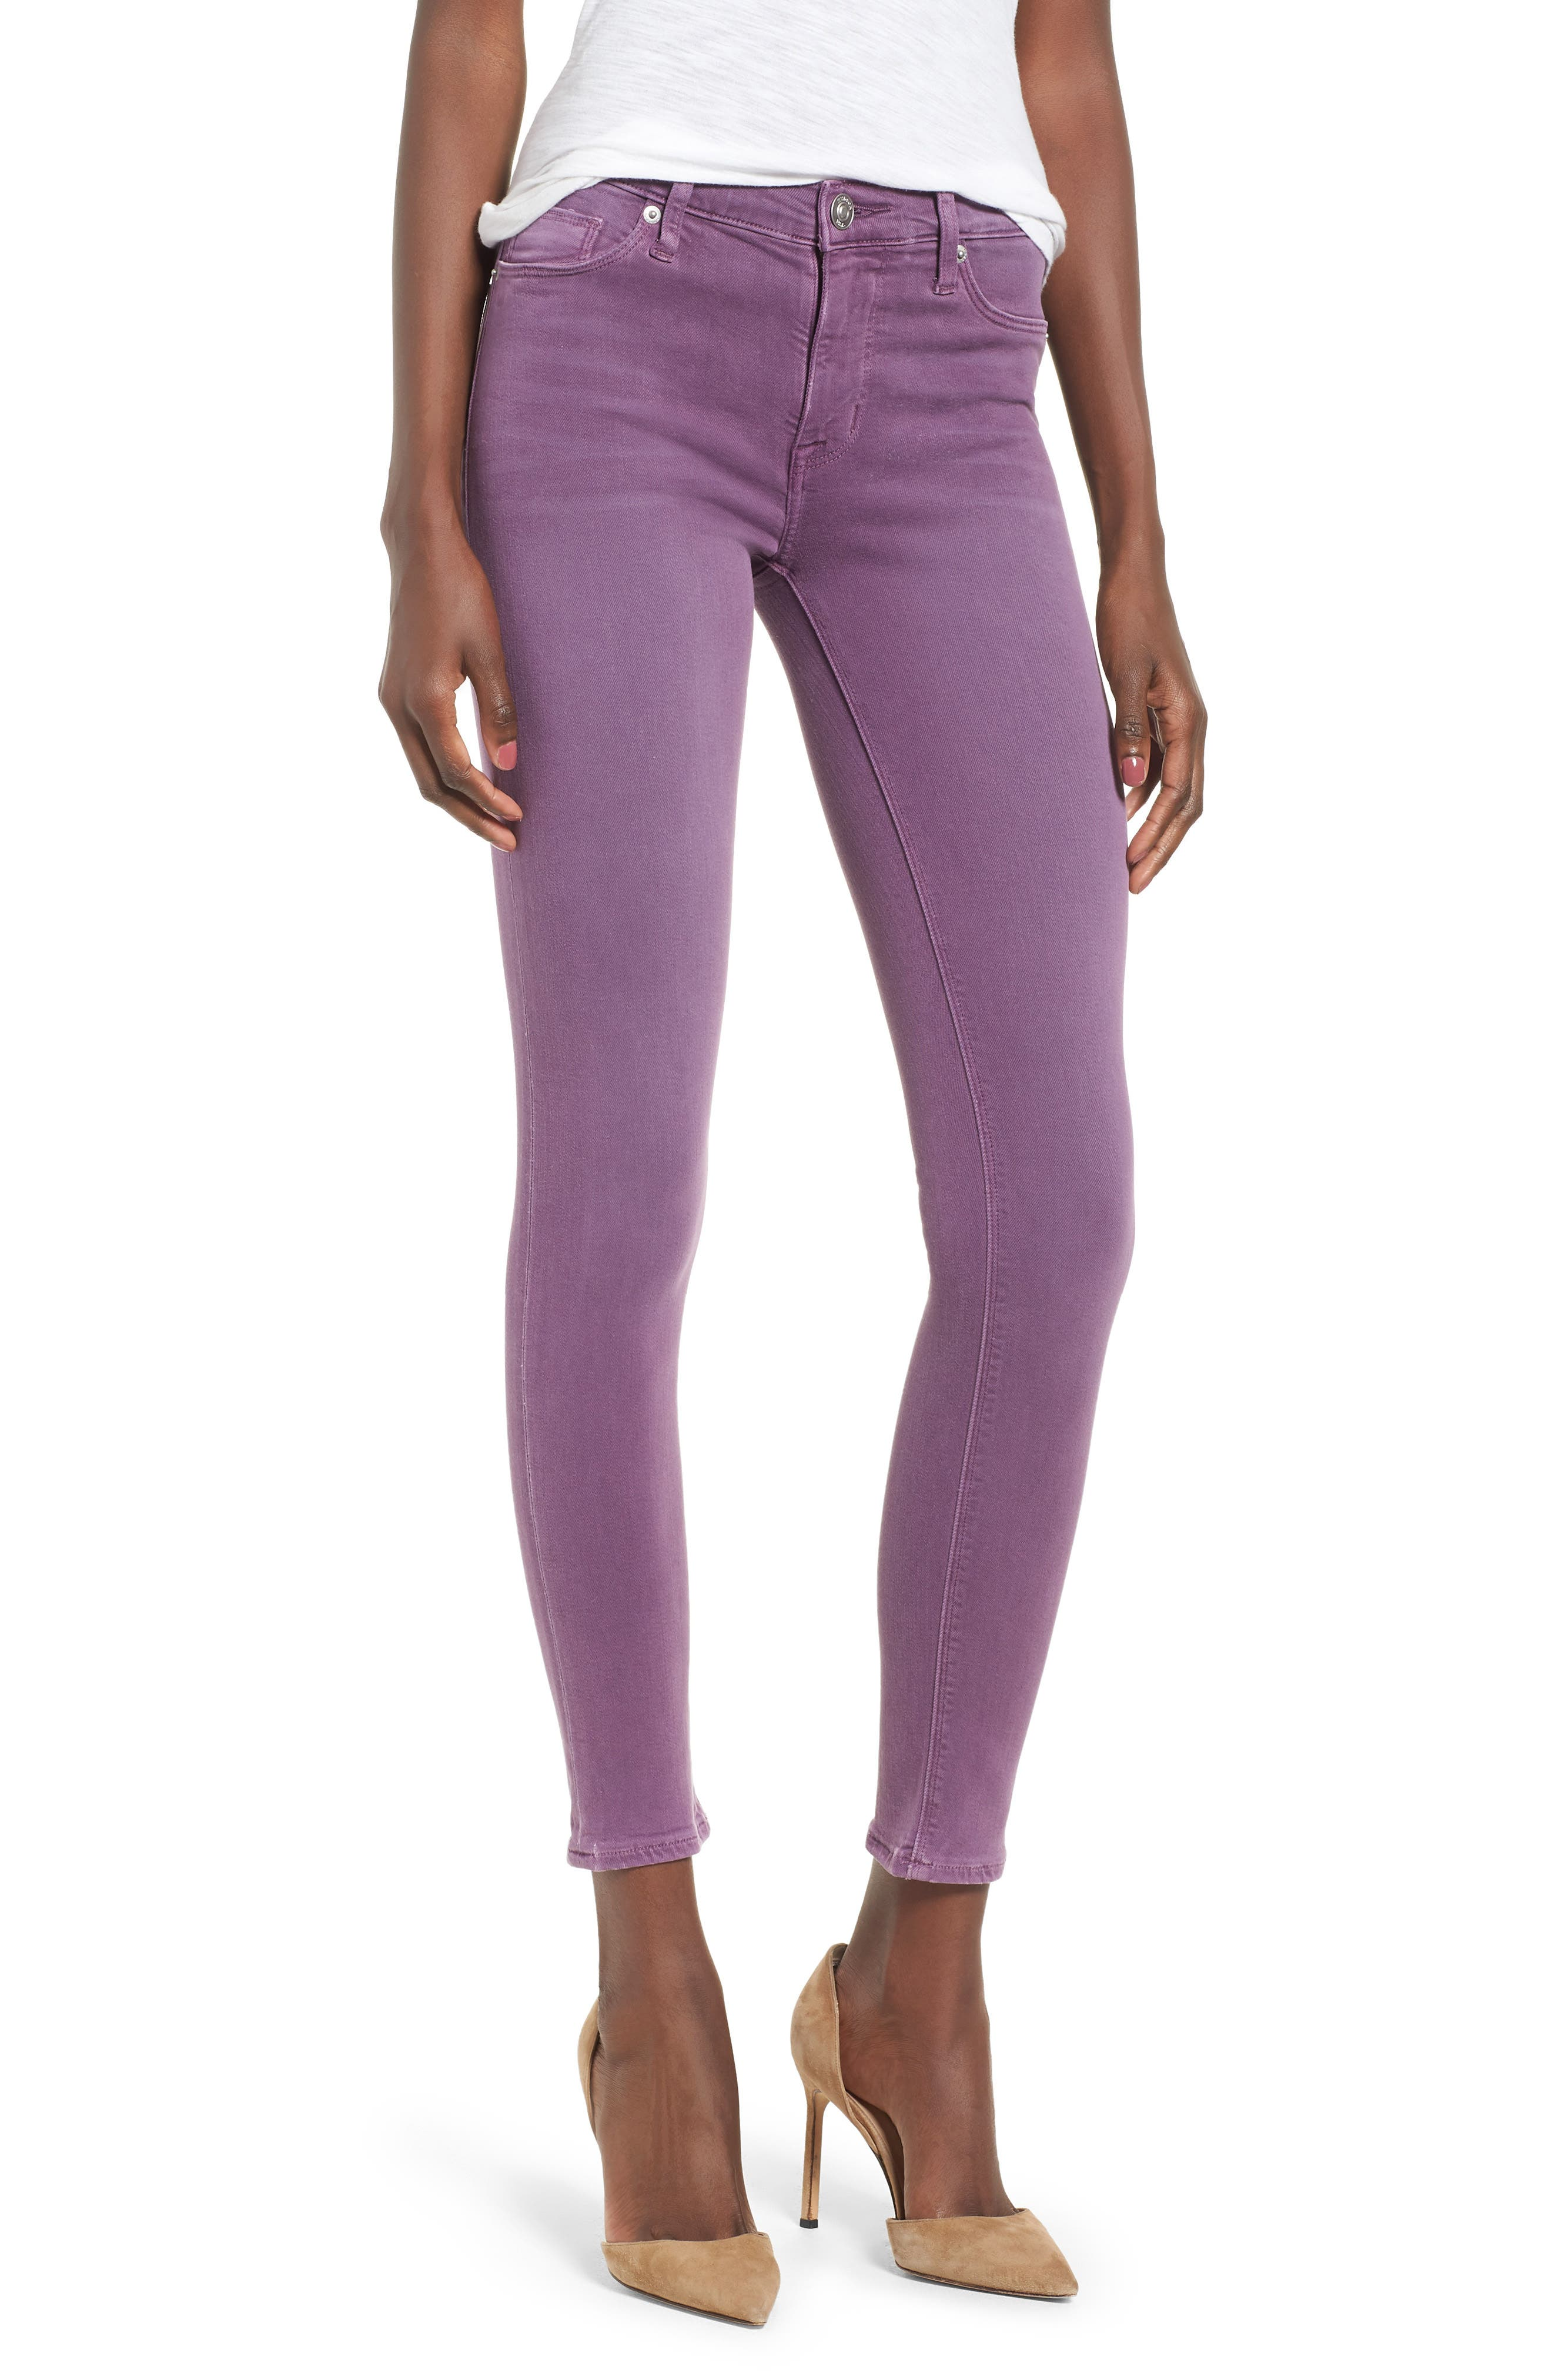 'Nico' Ankle Skinny Jeans,                             Main thumbnail 1, color,                             512